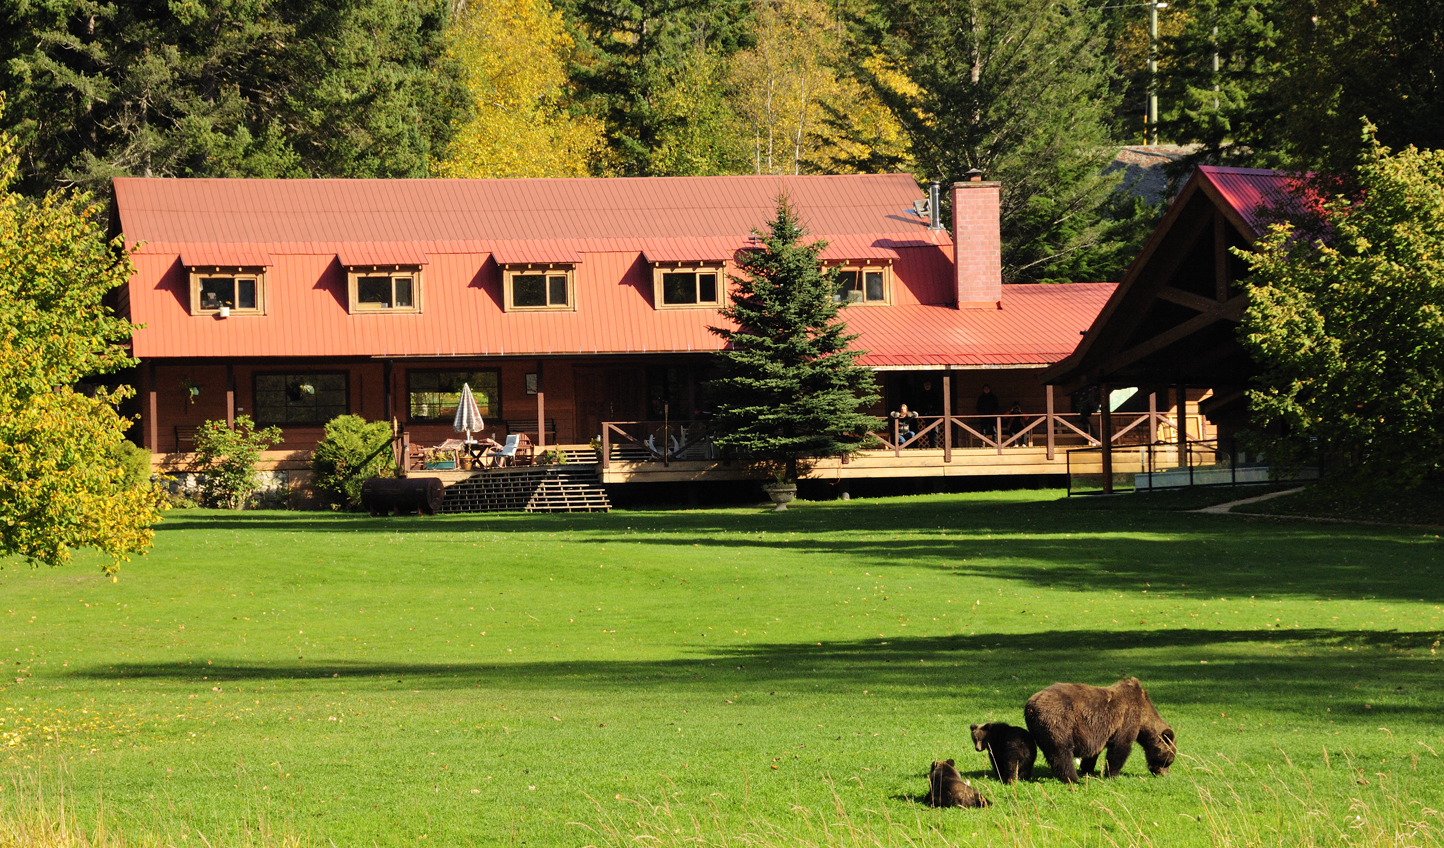 In the heart of the Great Bear Rainforest, watch as bears stroll across the front lawn